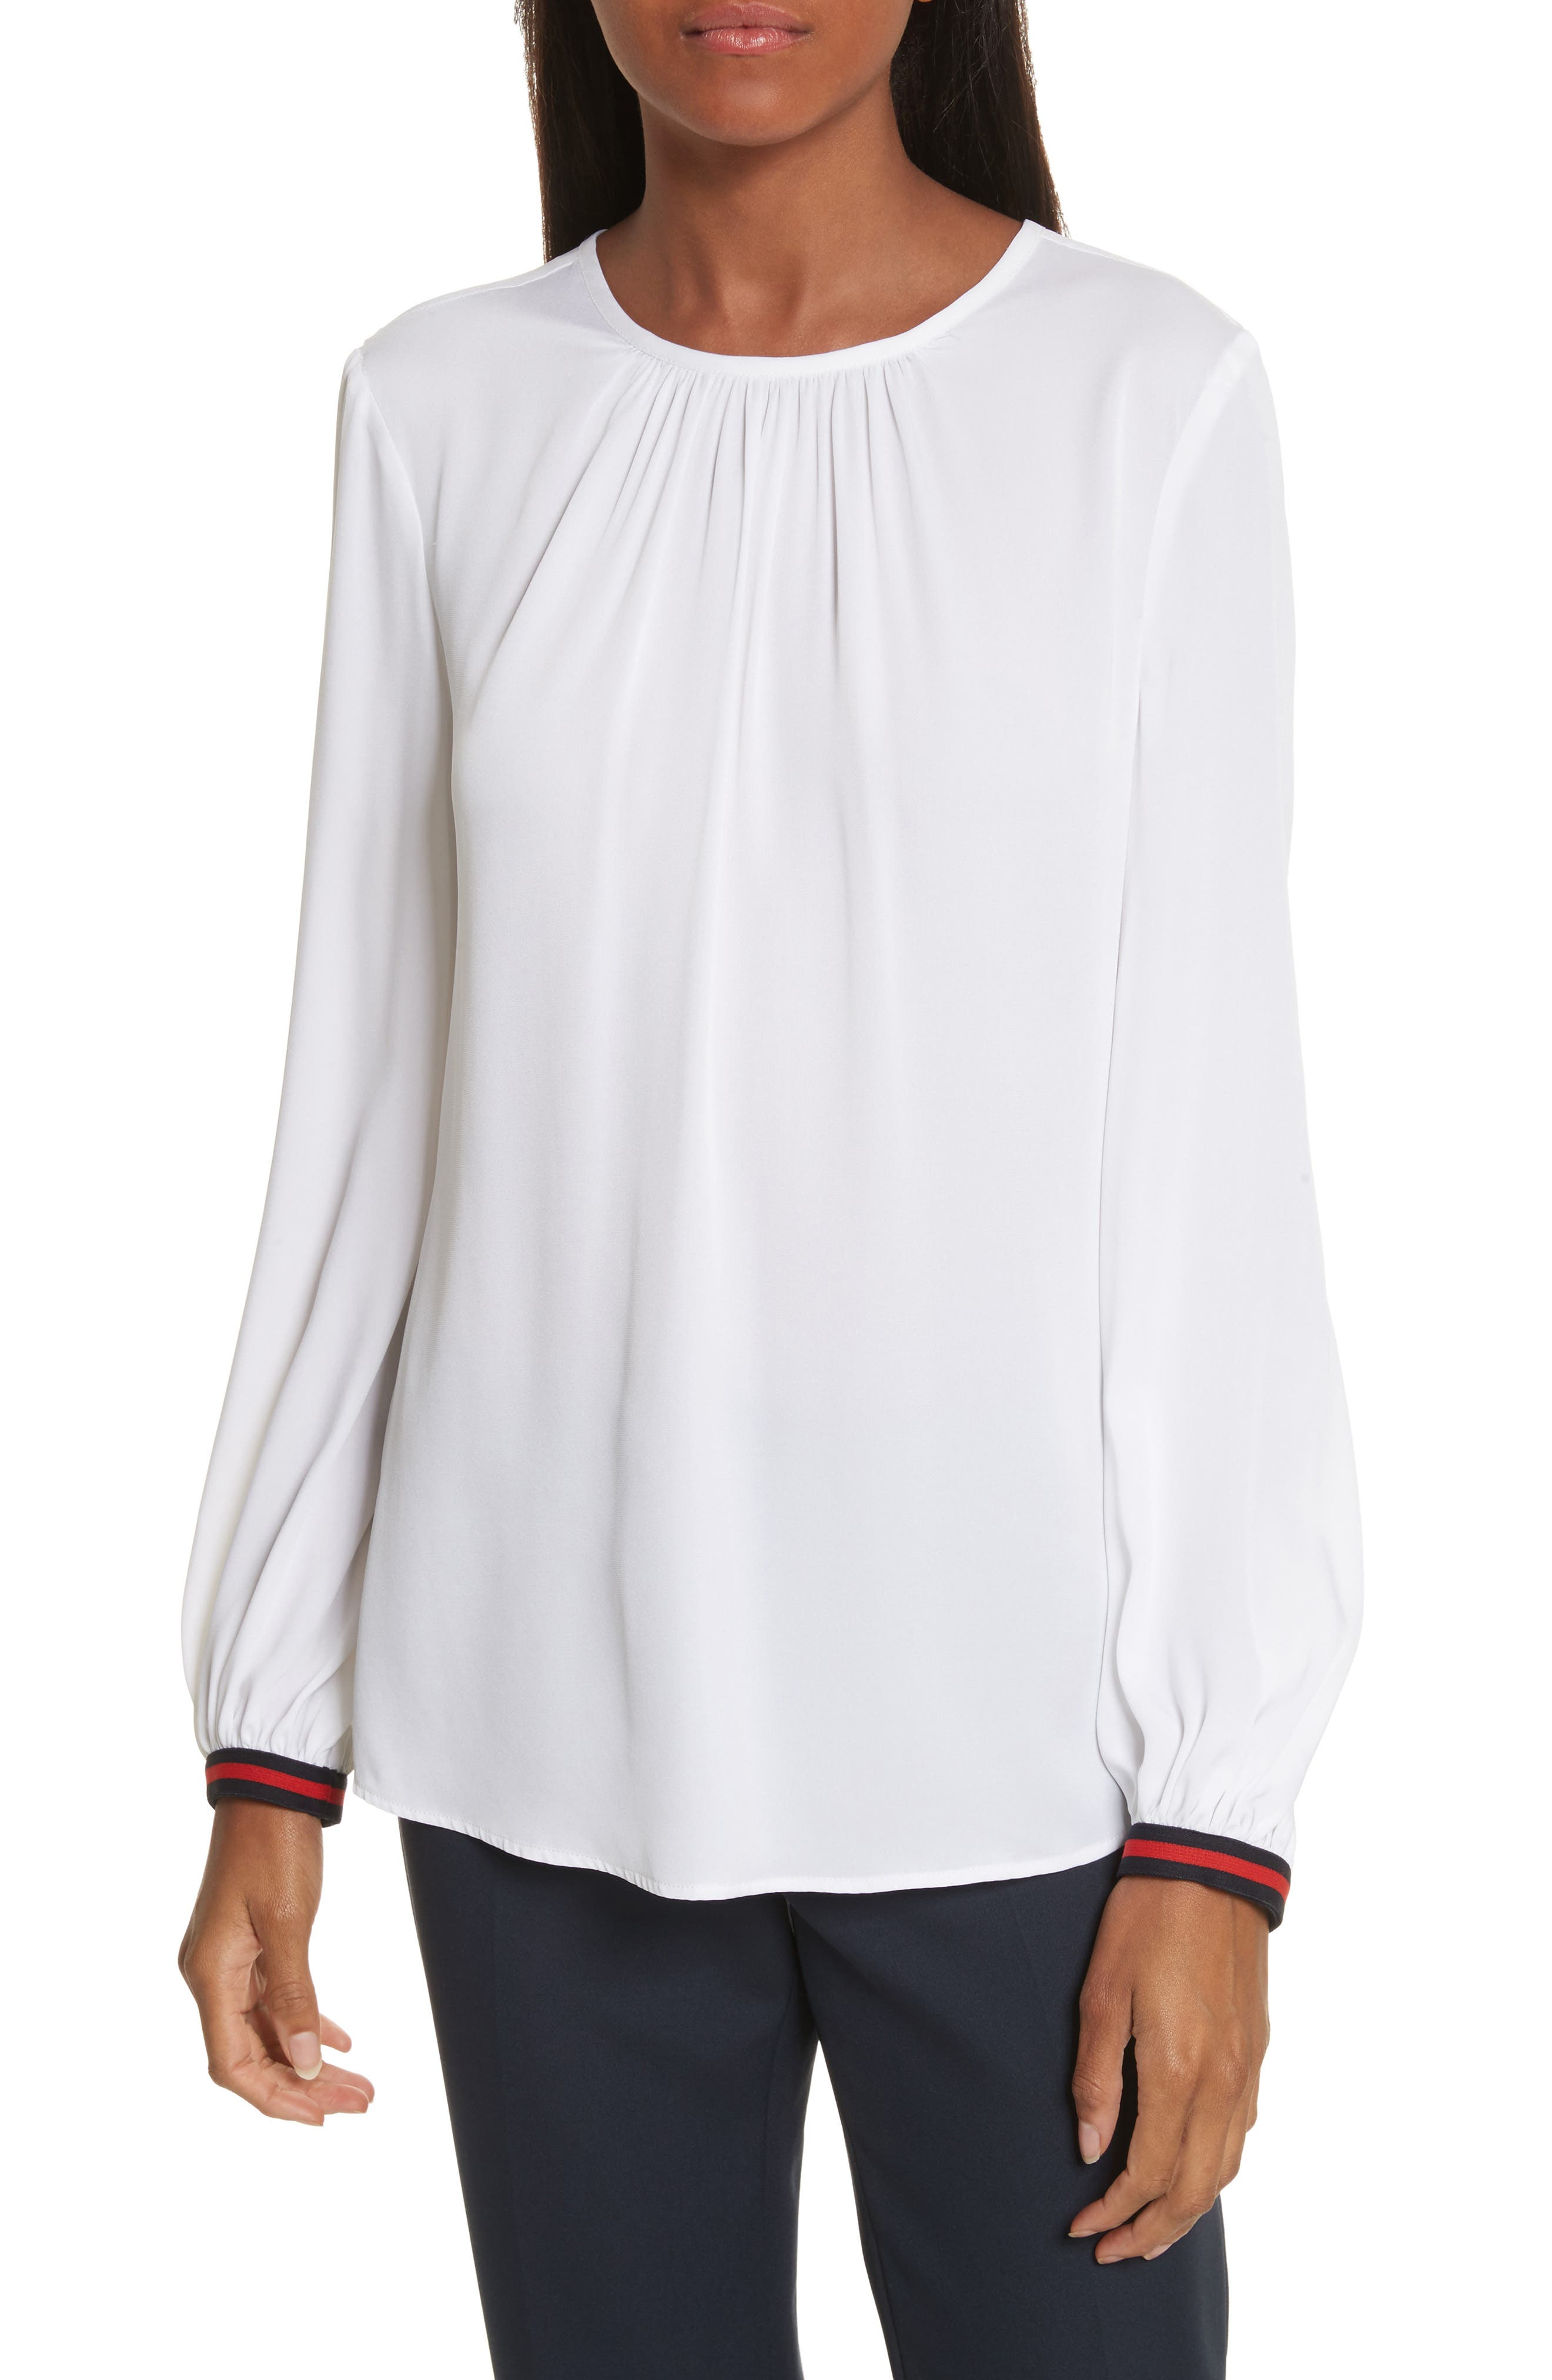 Main Image - Milly Mandy Stretch Silk Top